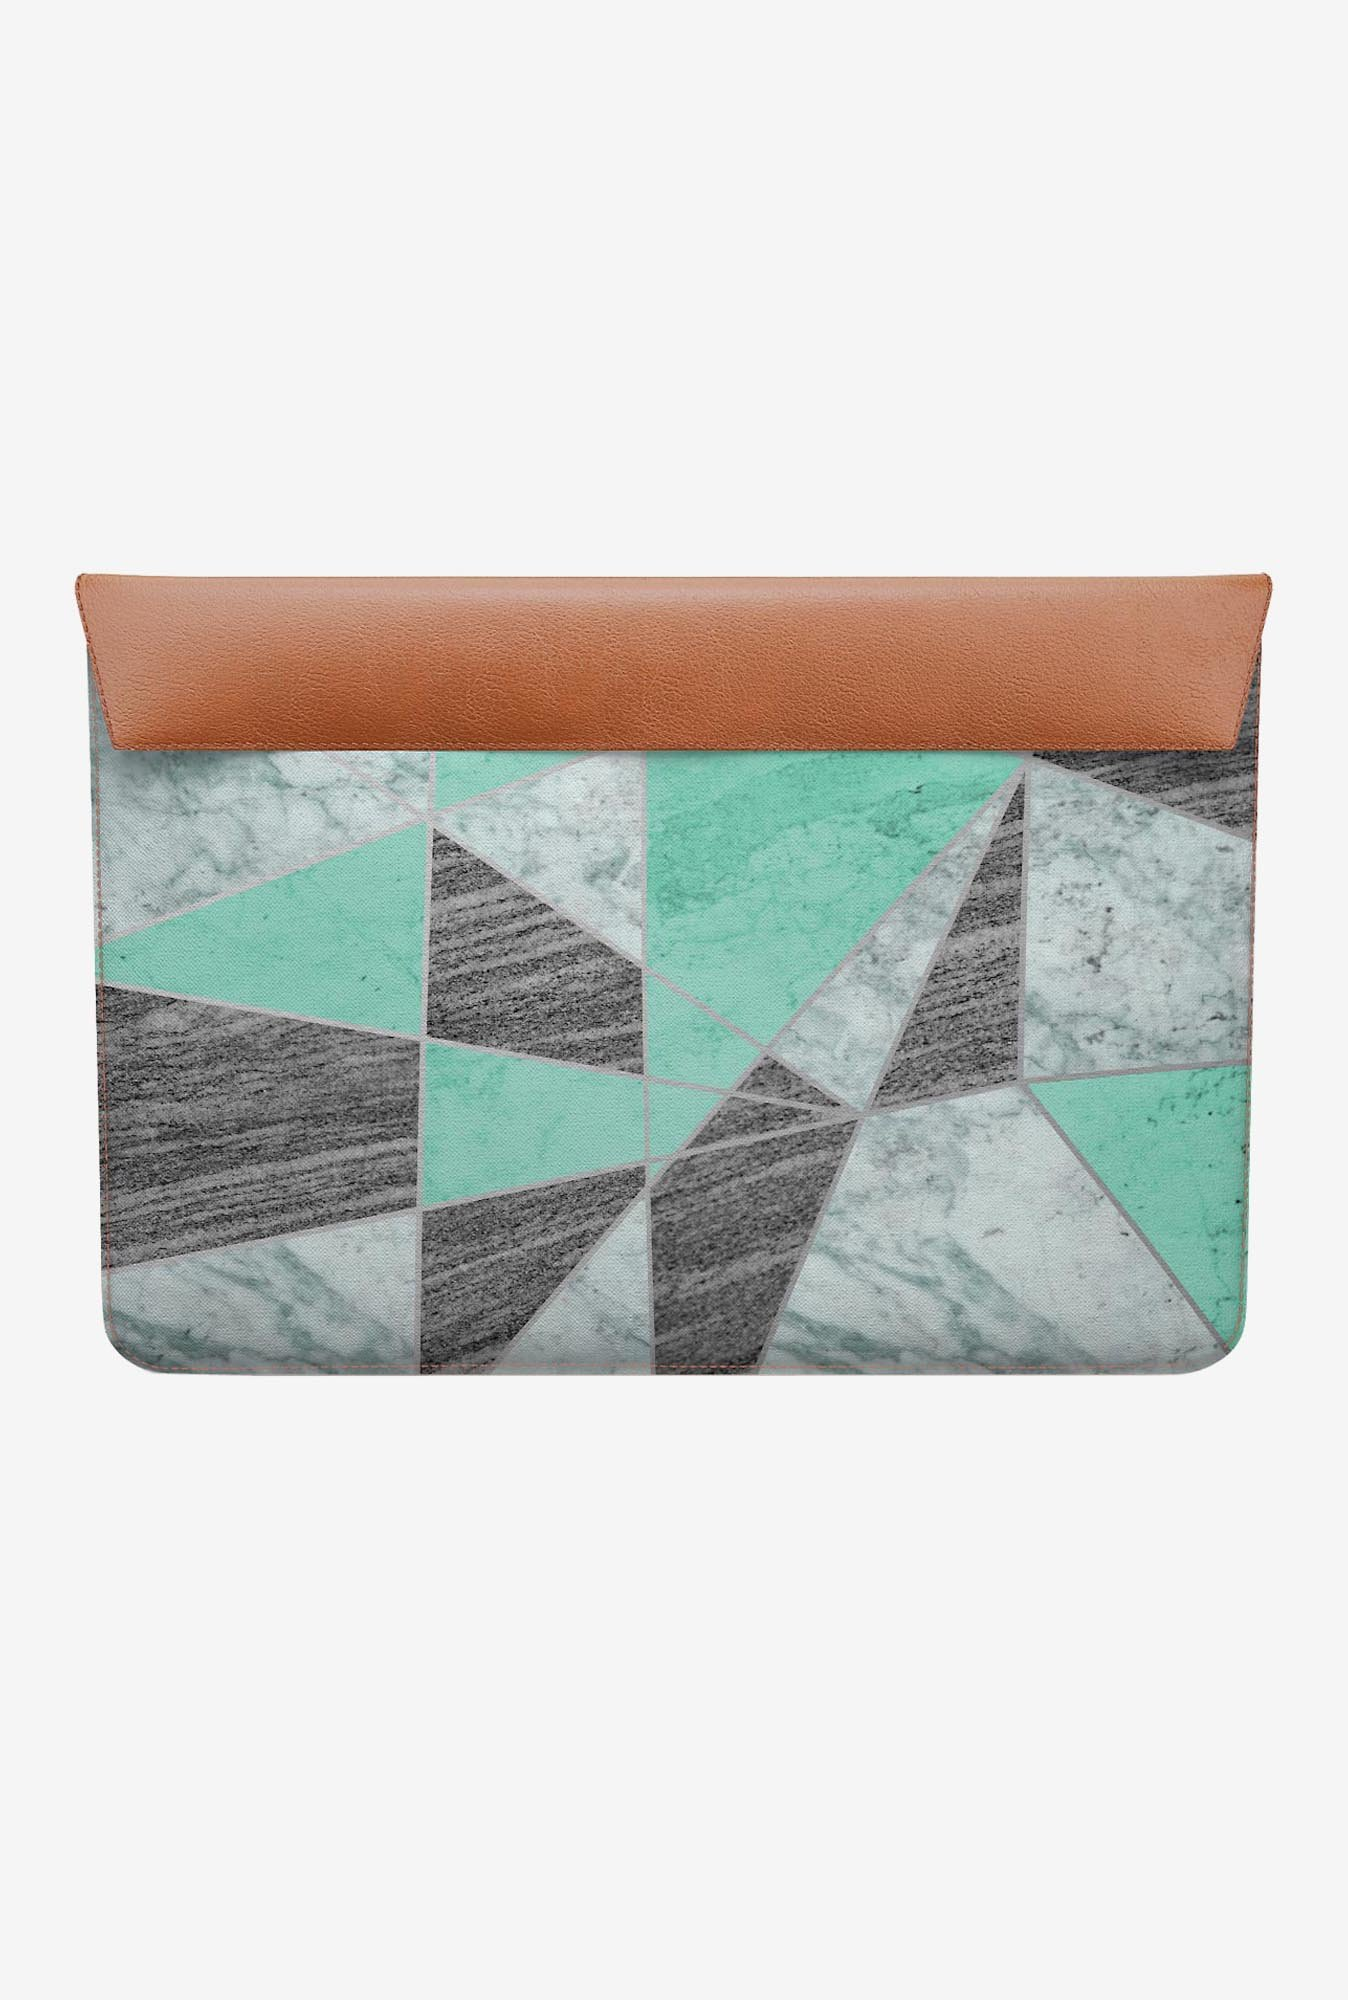 DailyObjects Marble Lines MacBook Pro 13 Envelope Sleeve